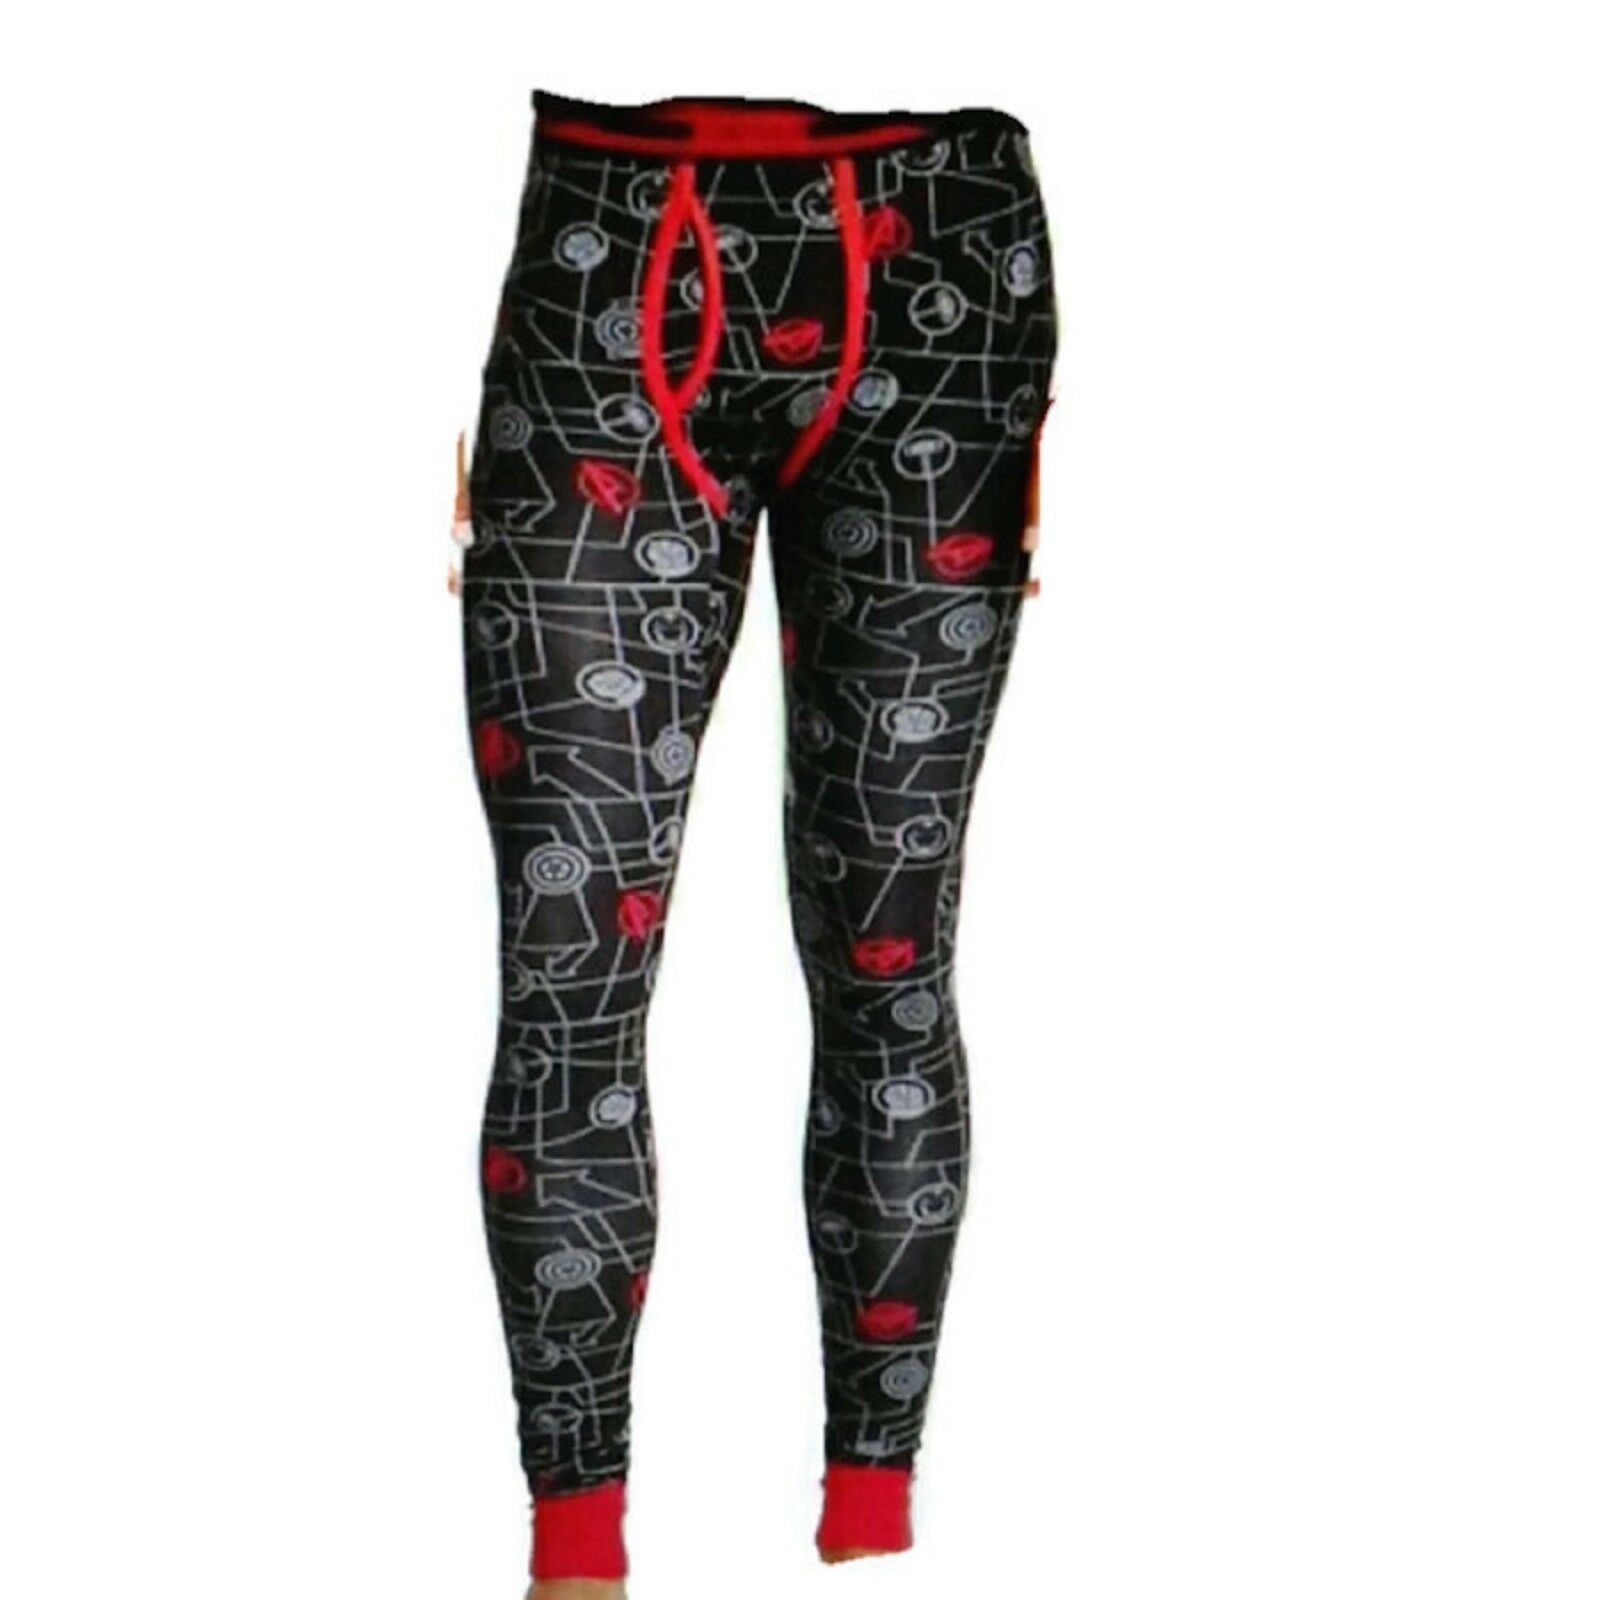 Marvel Avengers Cool Johns Long Underwear S 28 30 Small NEW Lounge Sleep Pants